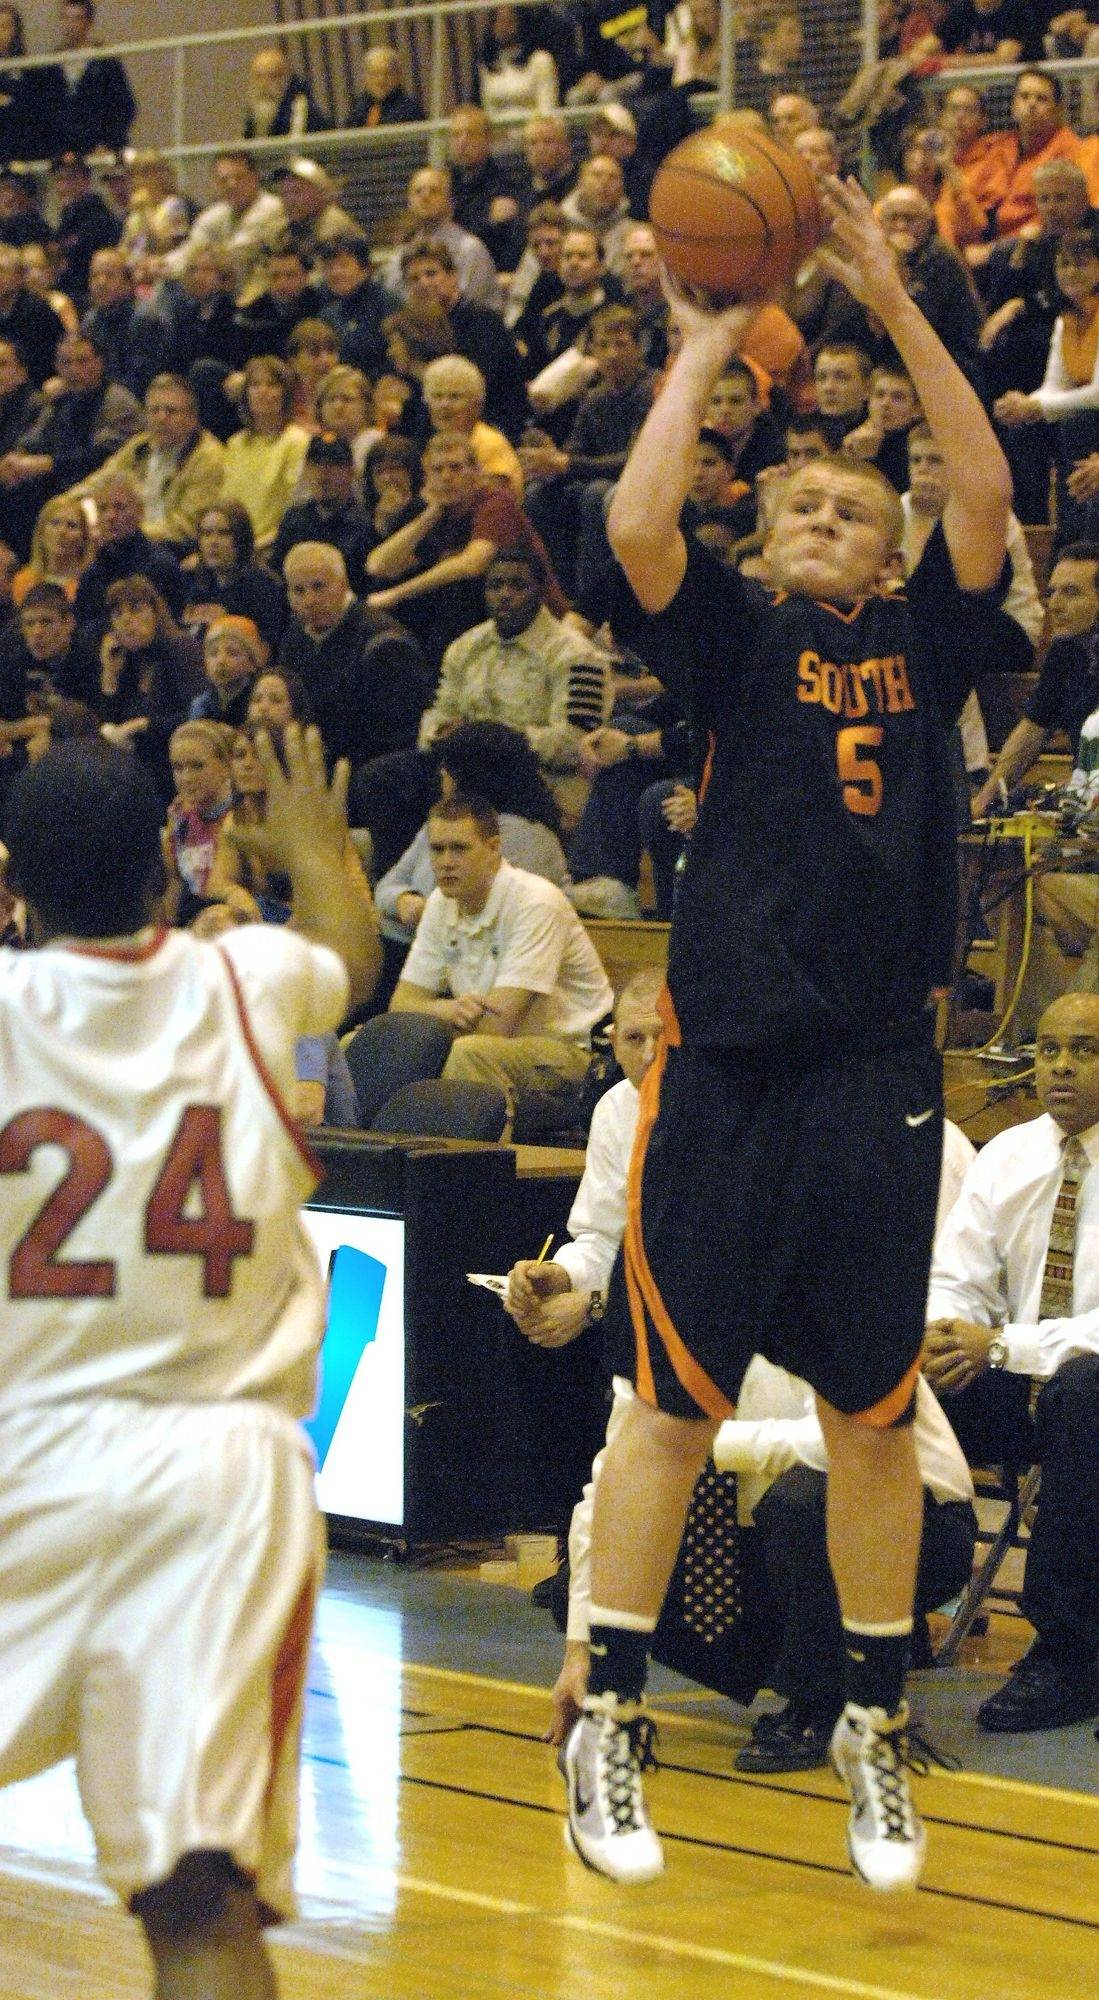 Reilly O'Toole of Wheaton Warrenville South goes up for a shot over Devin Parks of Glenbard East.